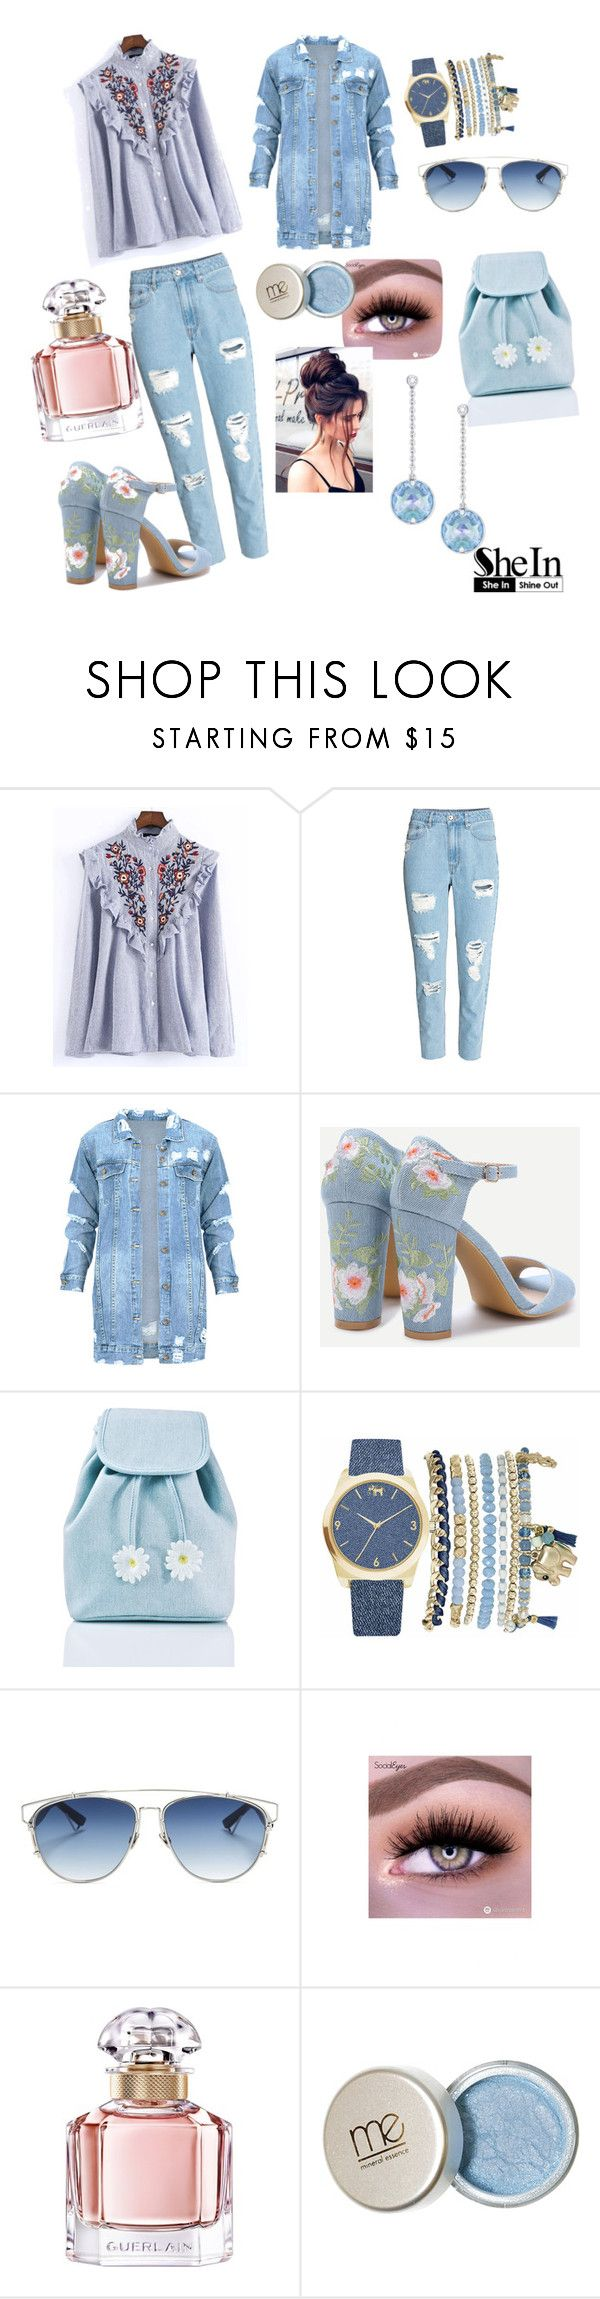 """Untitled #148"" by bosniamode ❤ liked on Polyvore featuring WithChic, Sugarbaby, Mixit, Christian Dior, Guerlain and Swarovski"